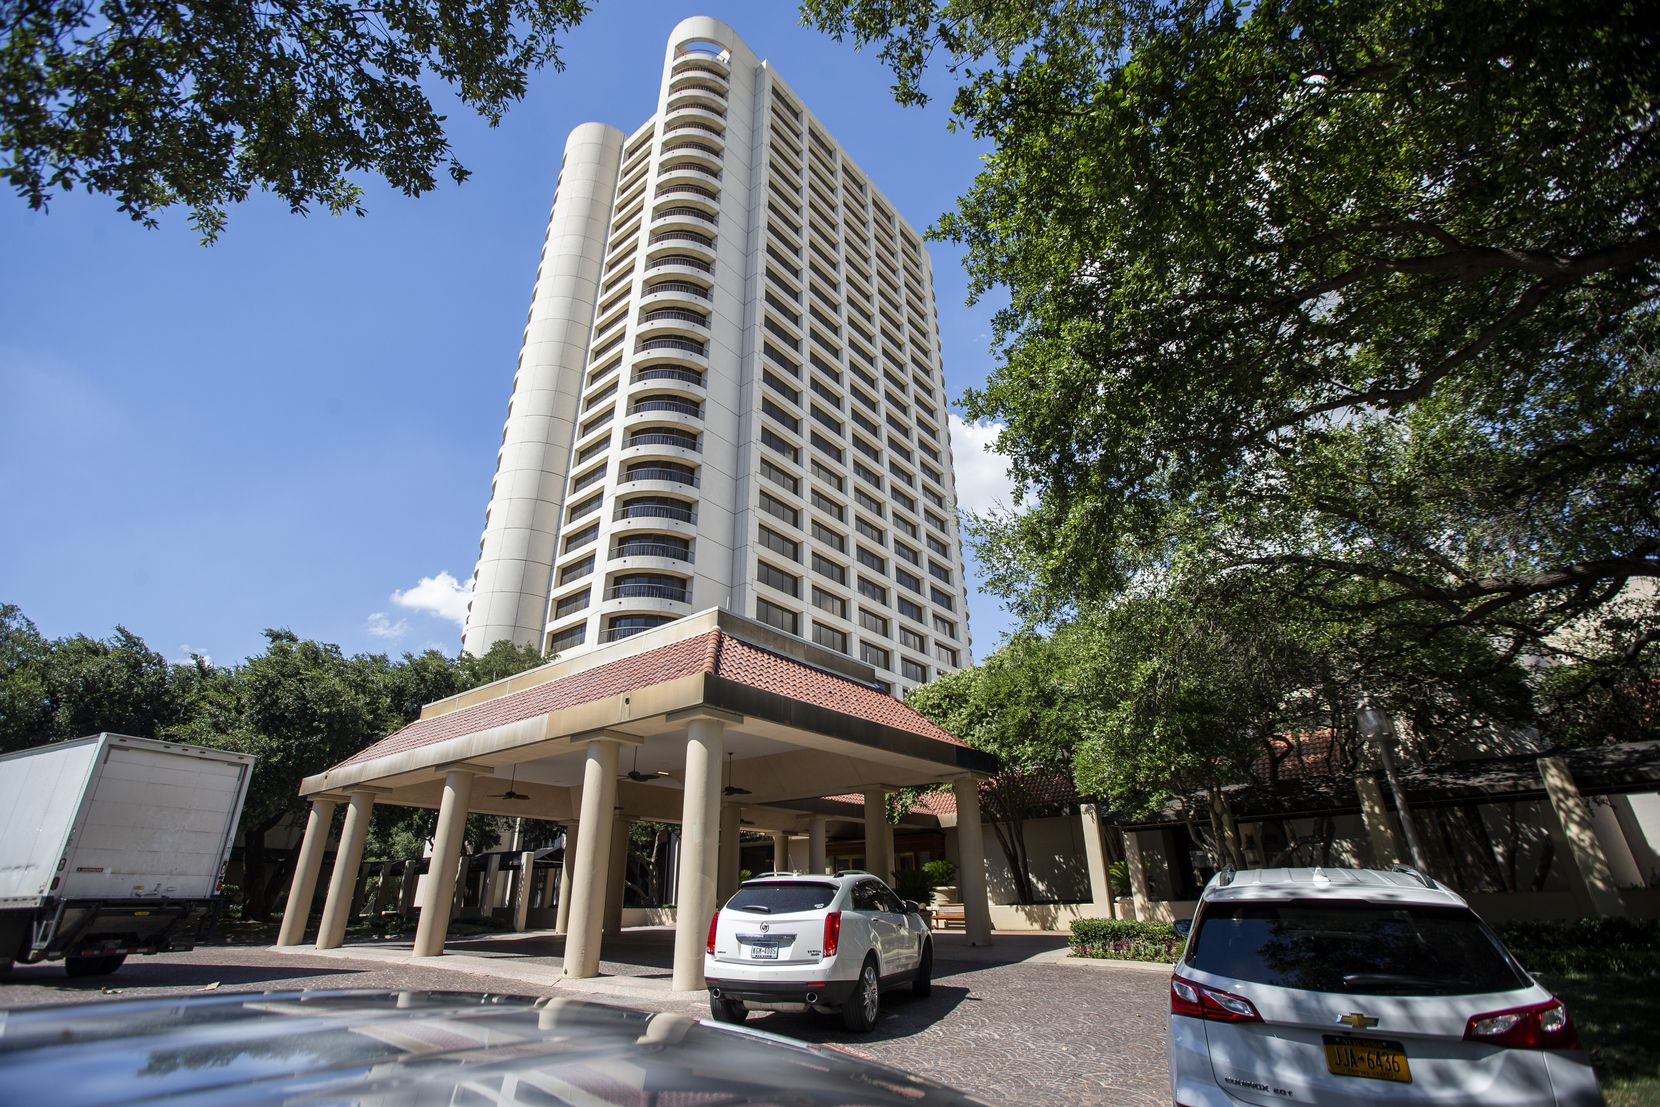 The 421-room Omni Las Colinas Hotel (formerly Omni Mandalay Hotel at Las Colinas), owned by Rowling's TRT Holdings, has implemented COVID-19 safety measures since reopening.